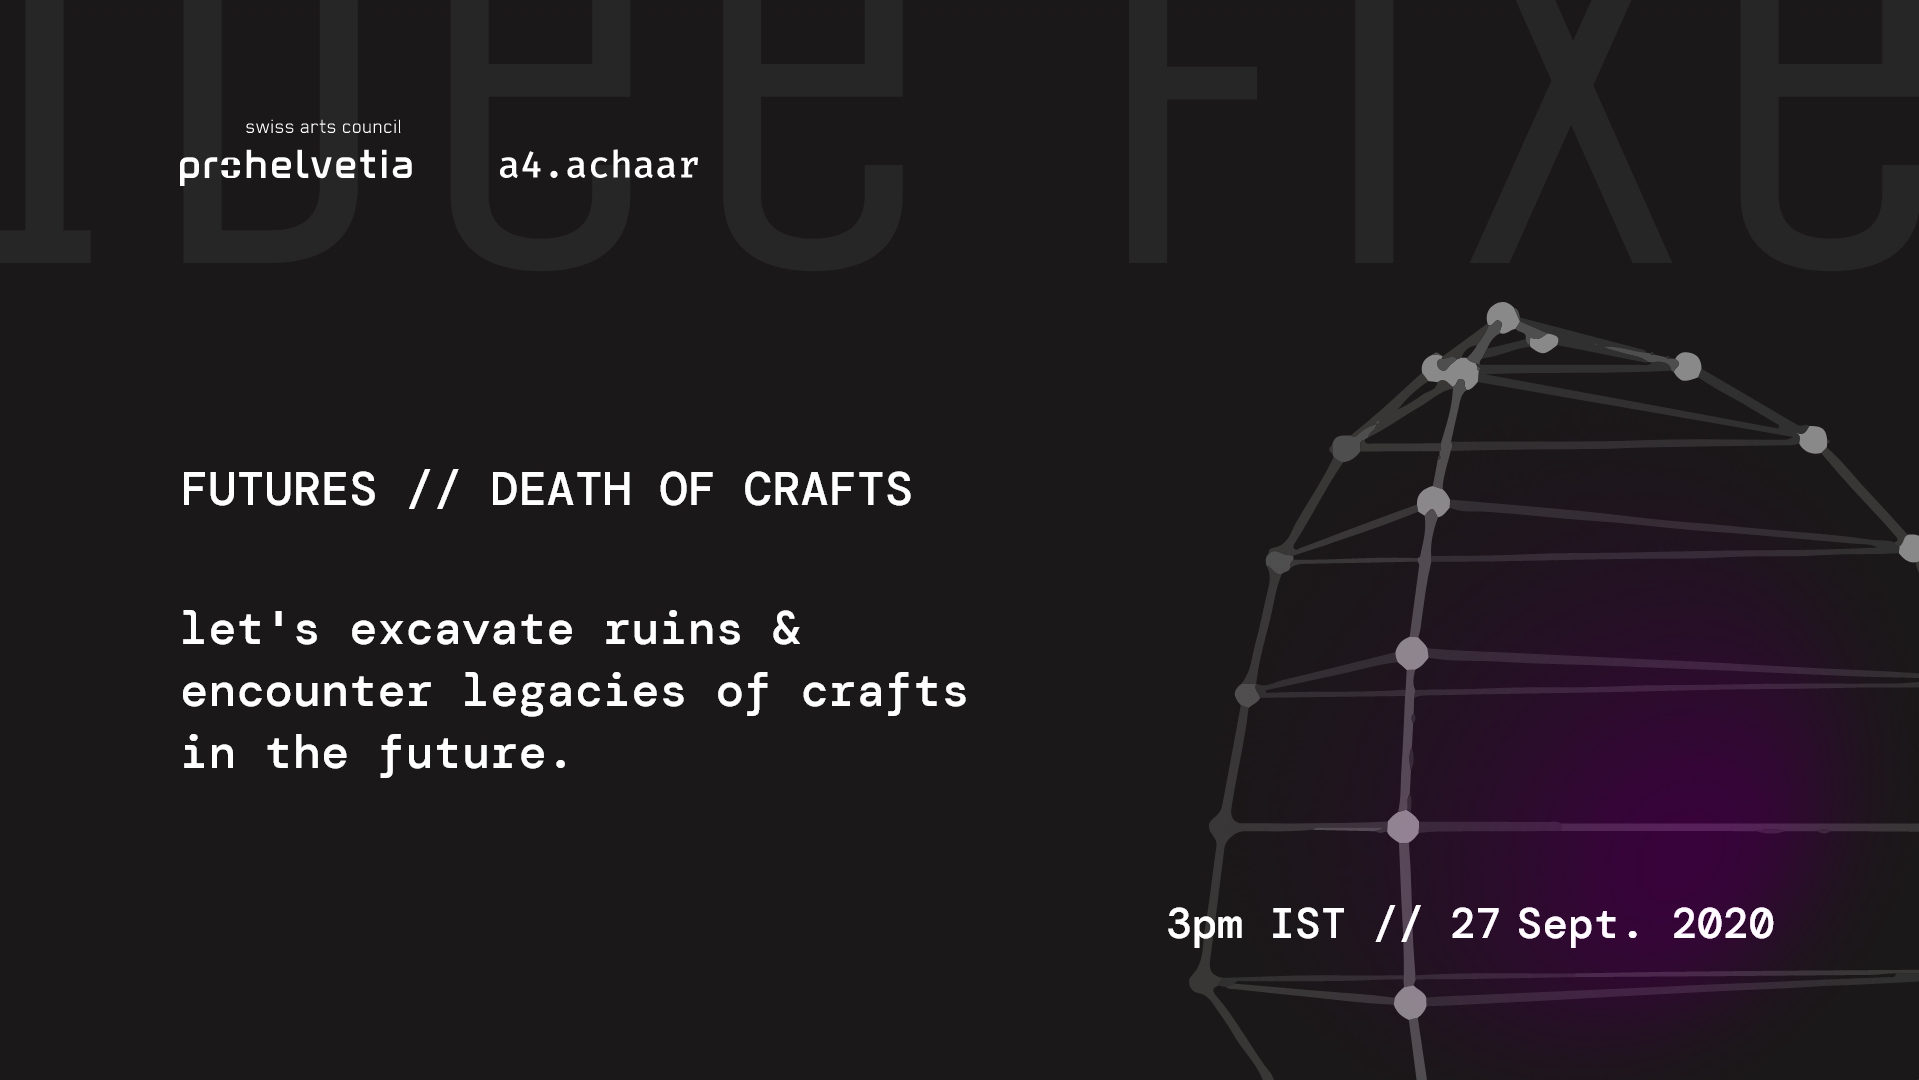 FUTURES // DEATH OF CRAFTS